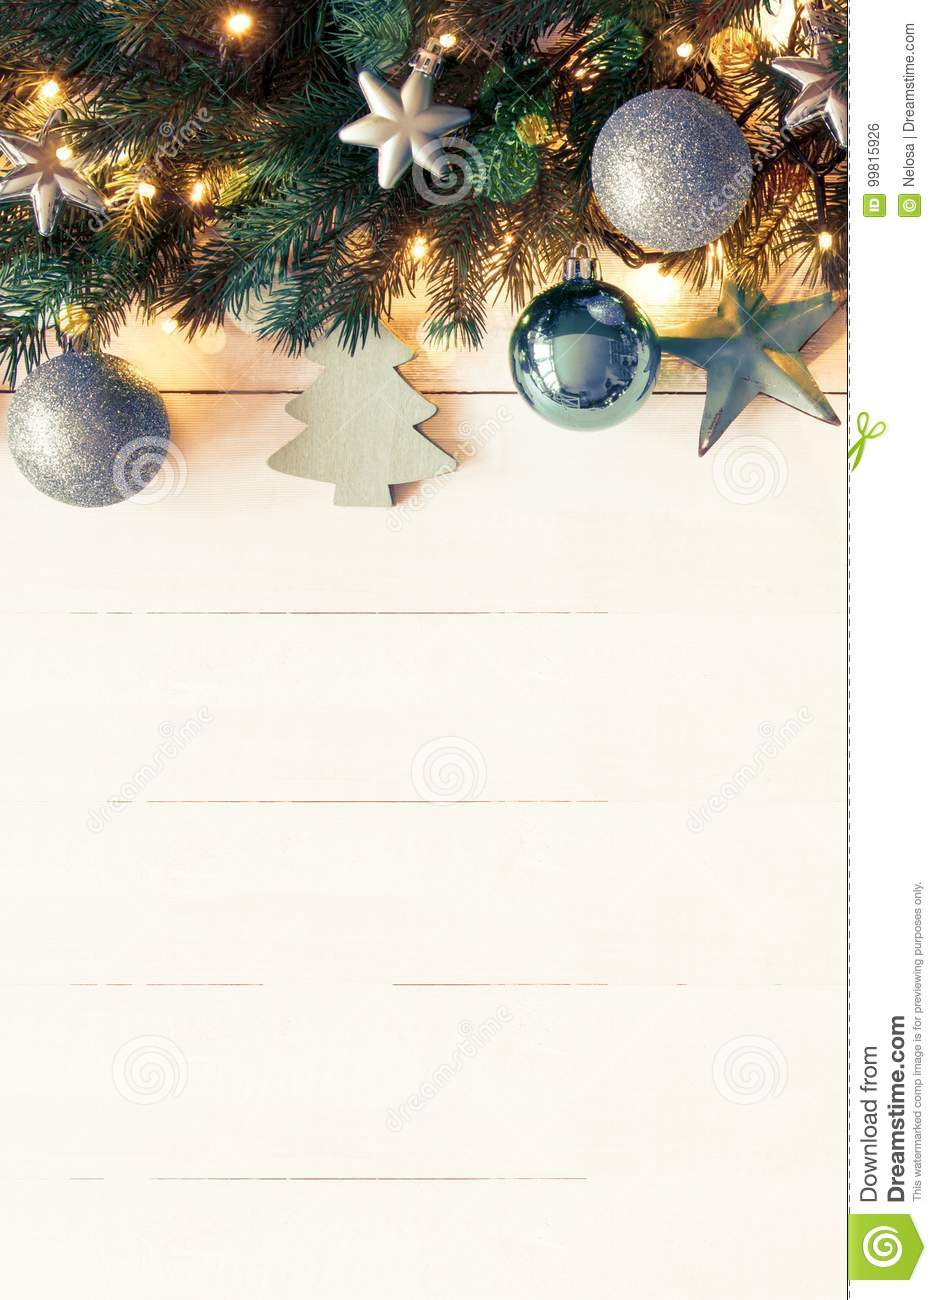 Vertical Turquoise Christmas Banner, Copy Space, Instagram Filter ...